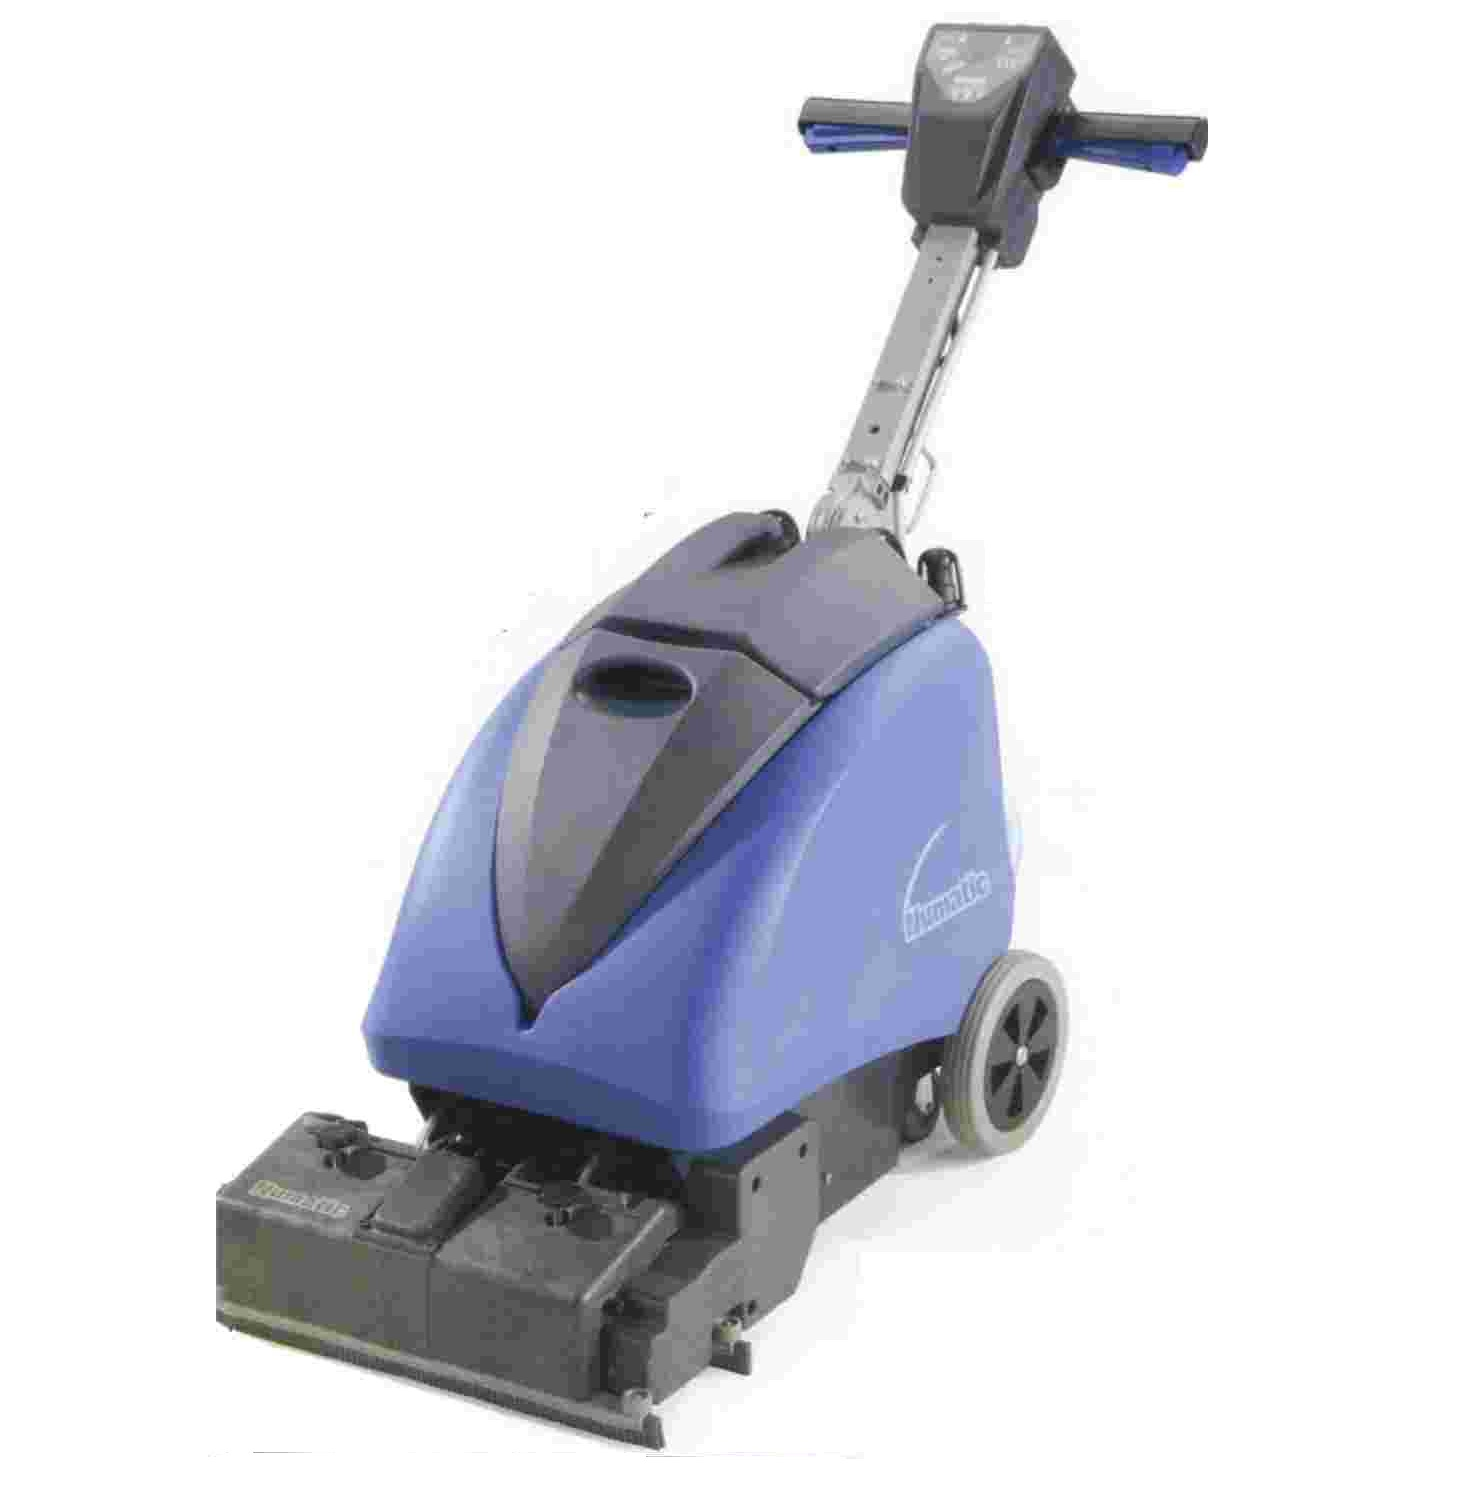 Numatic Twintec TTQ1535 Scrubber Dryer - Mains